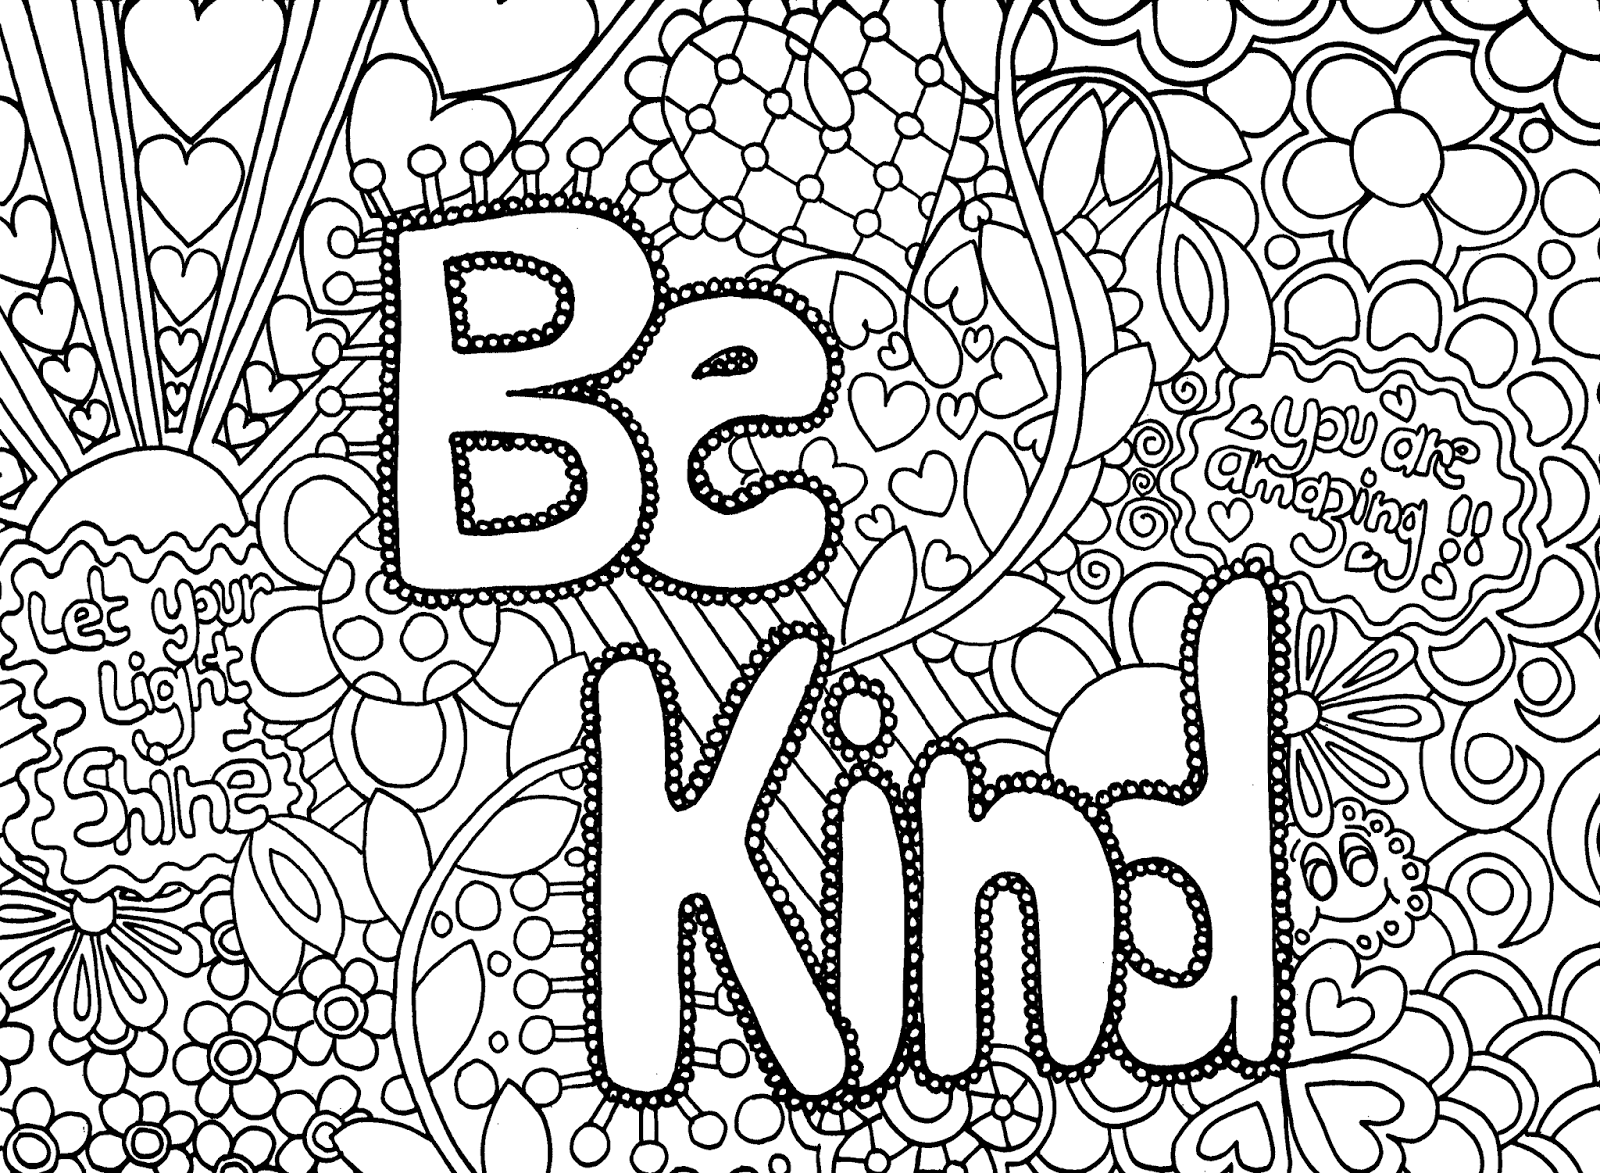 Coloring Quote Pages Printable Coloring Pages Abstract Coloring Pages Detailed Coloring Pages Coloring Pages For Teenagers